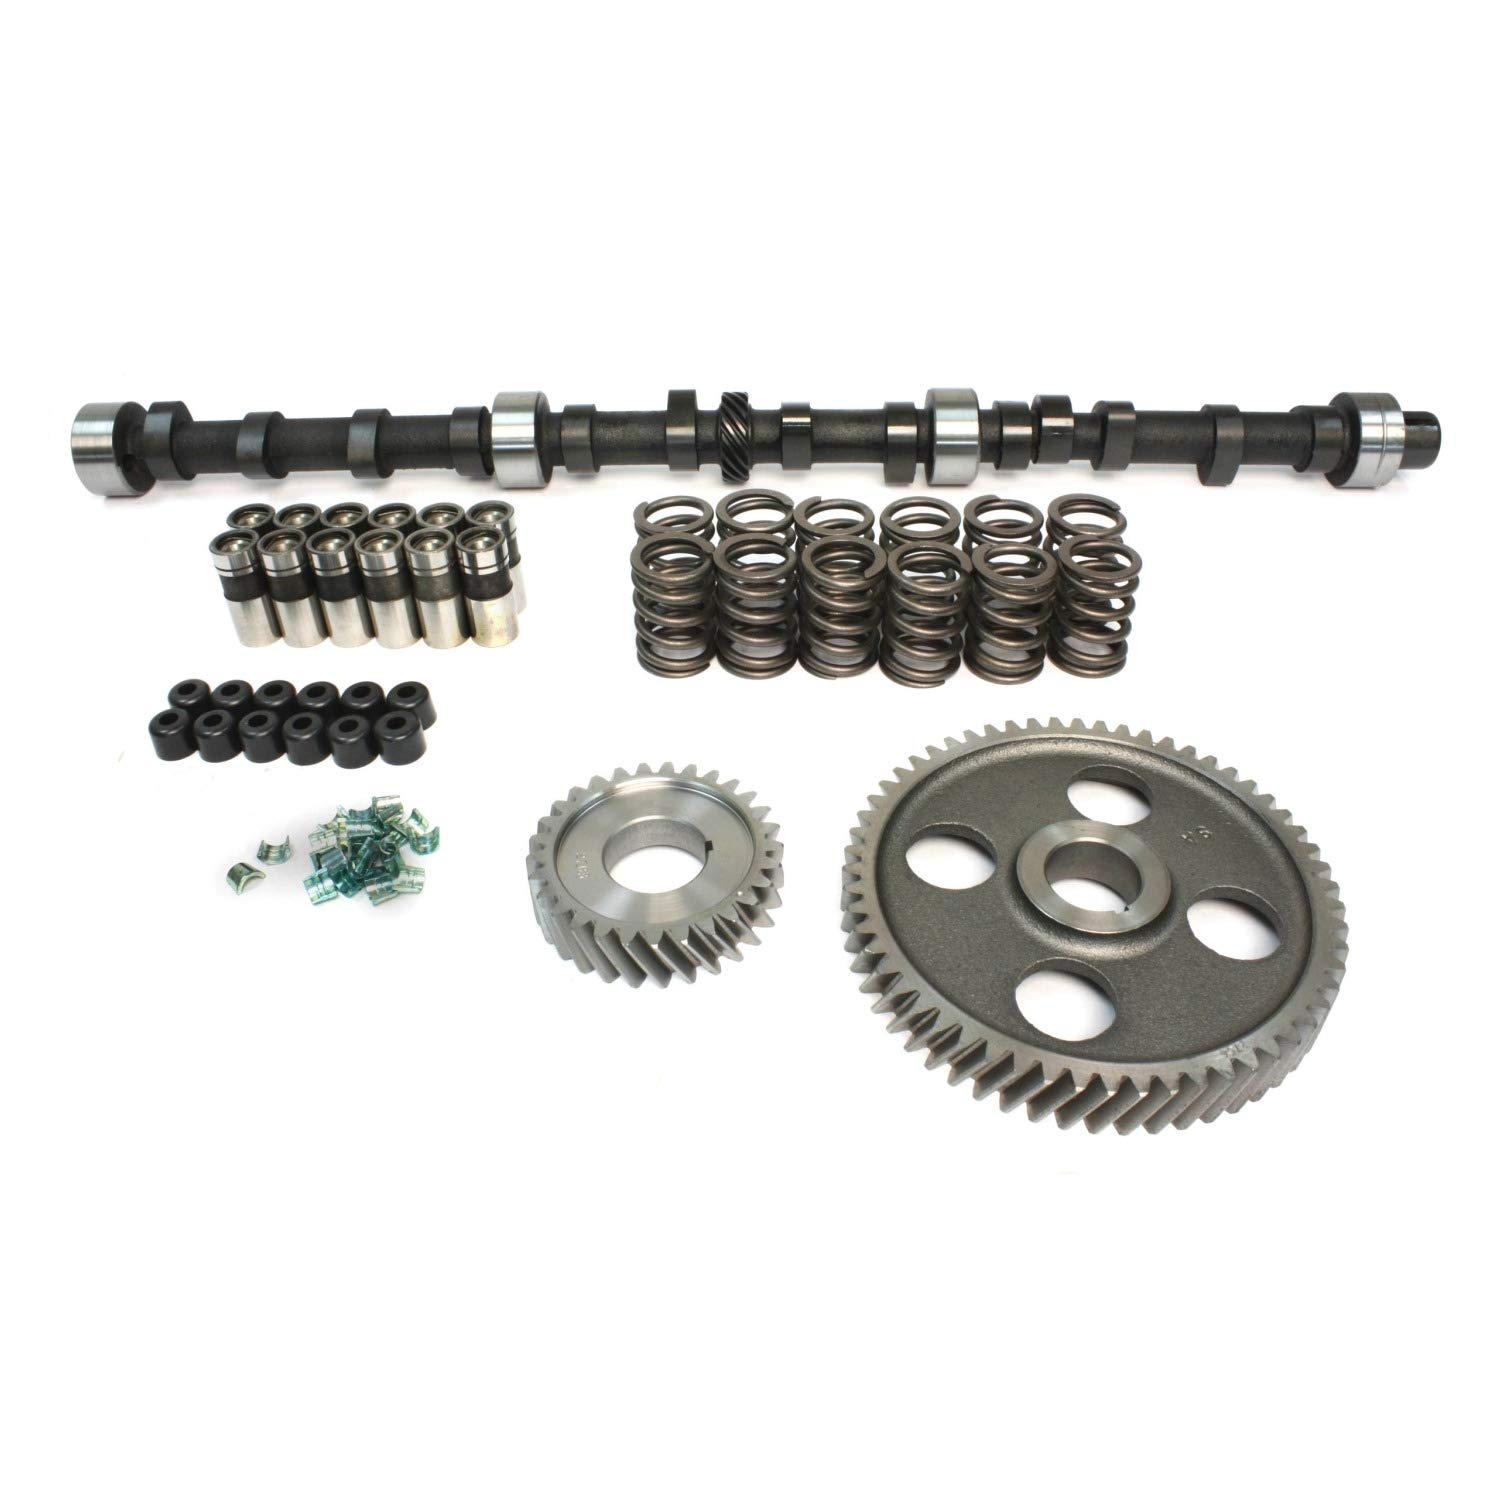 Lunati 10660701K Voodoo 213//219 Hydraulic Flat Tappet Complete Cam Kit for Ford 240-300